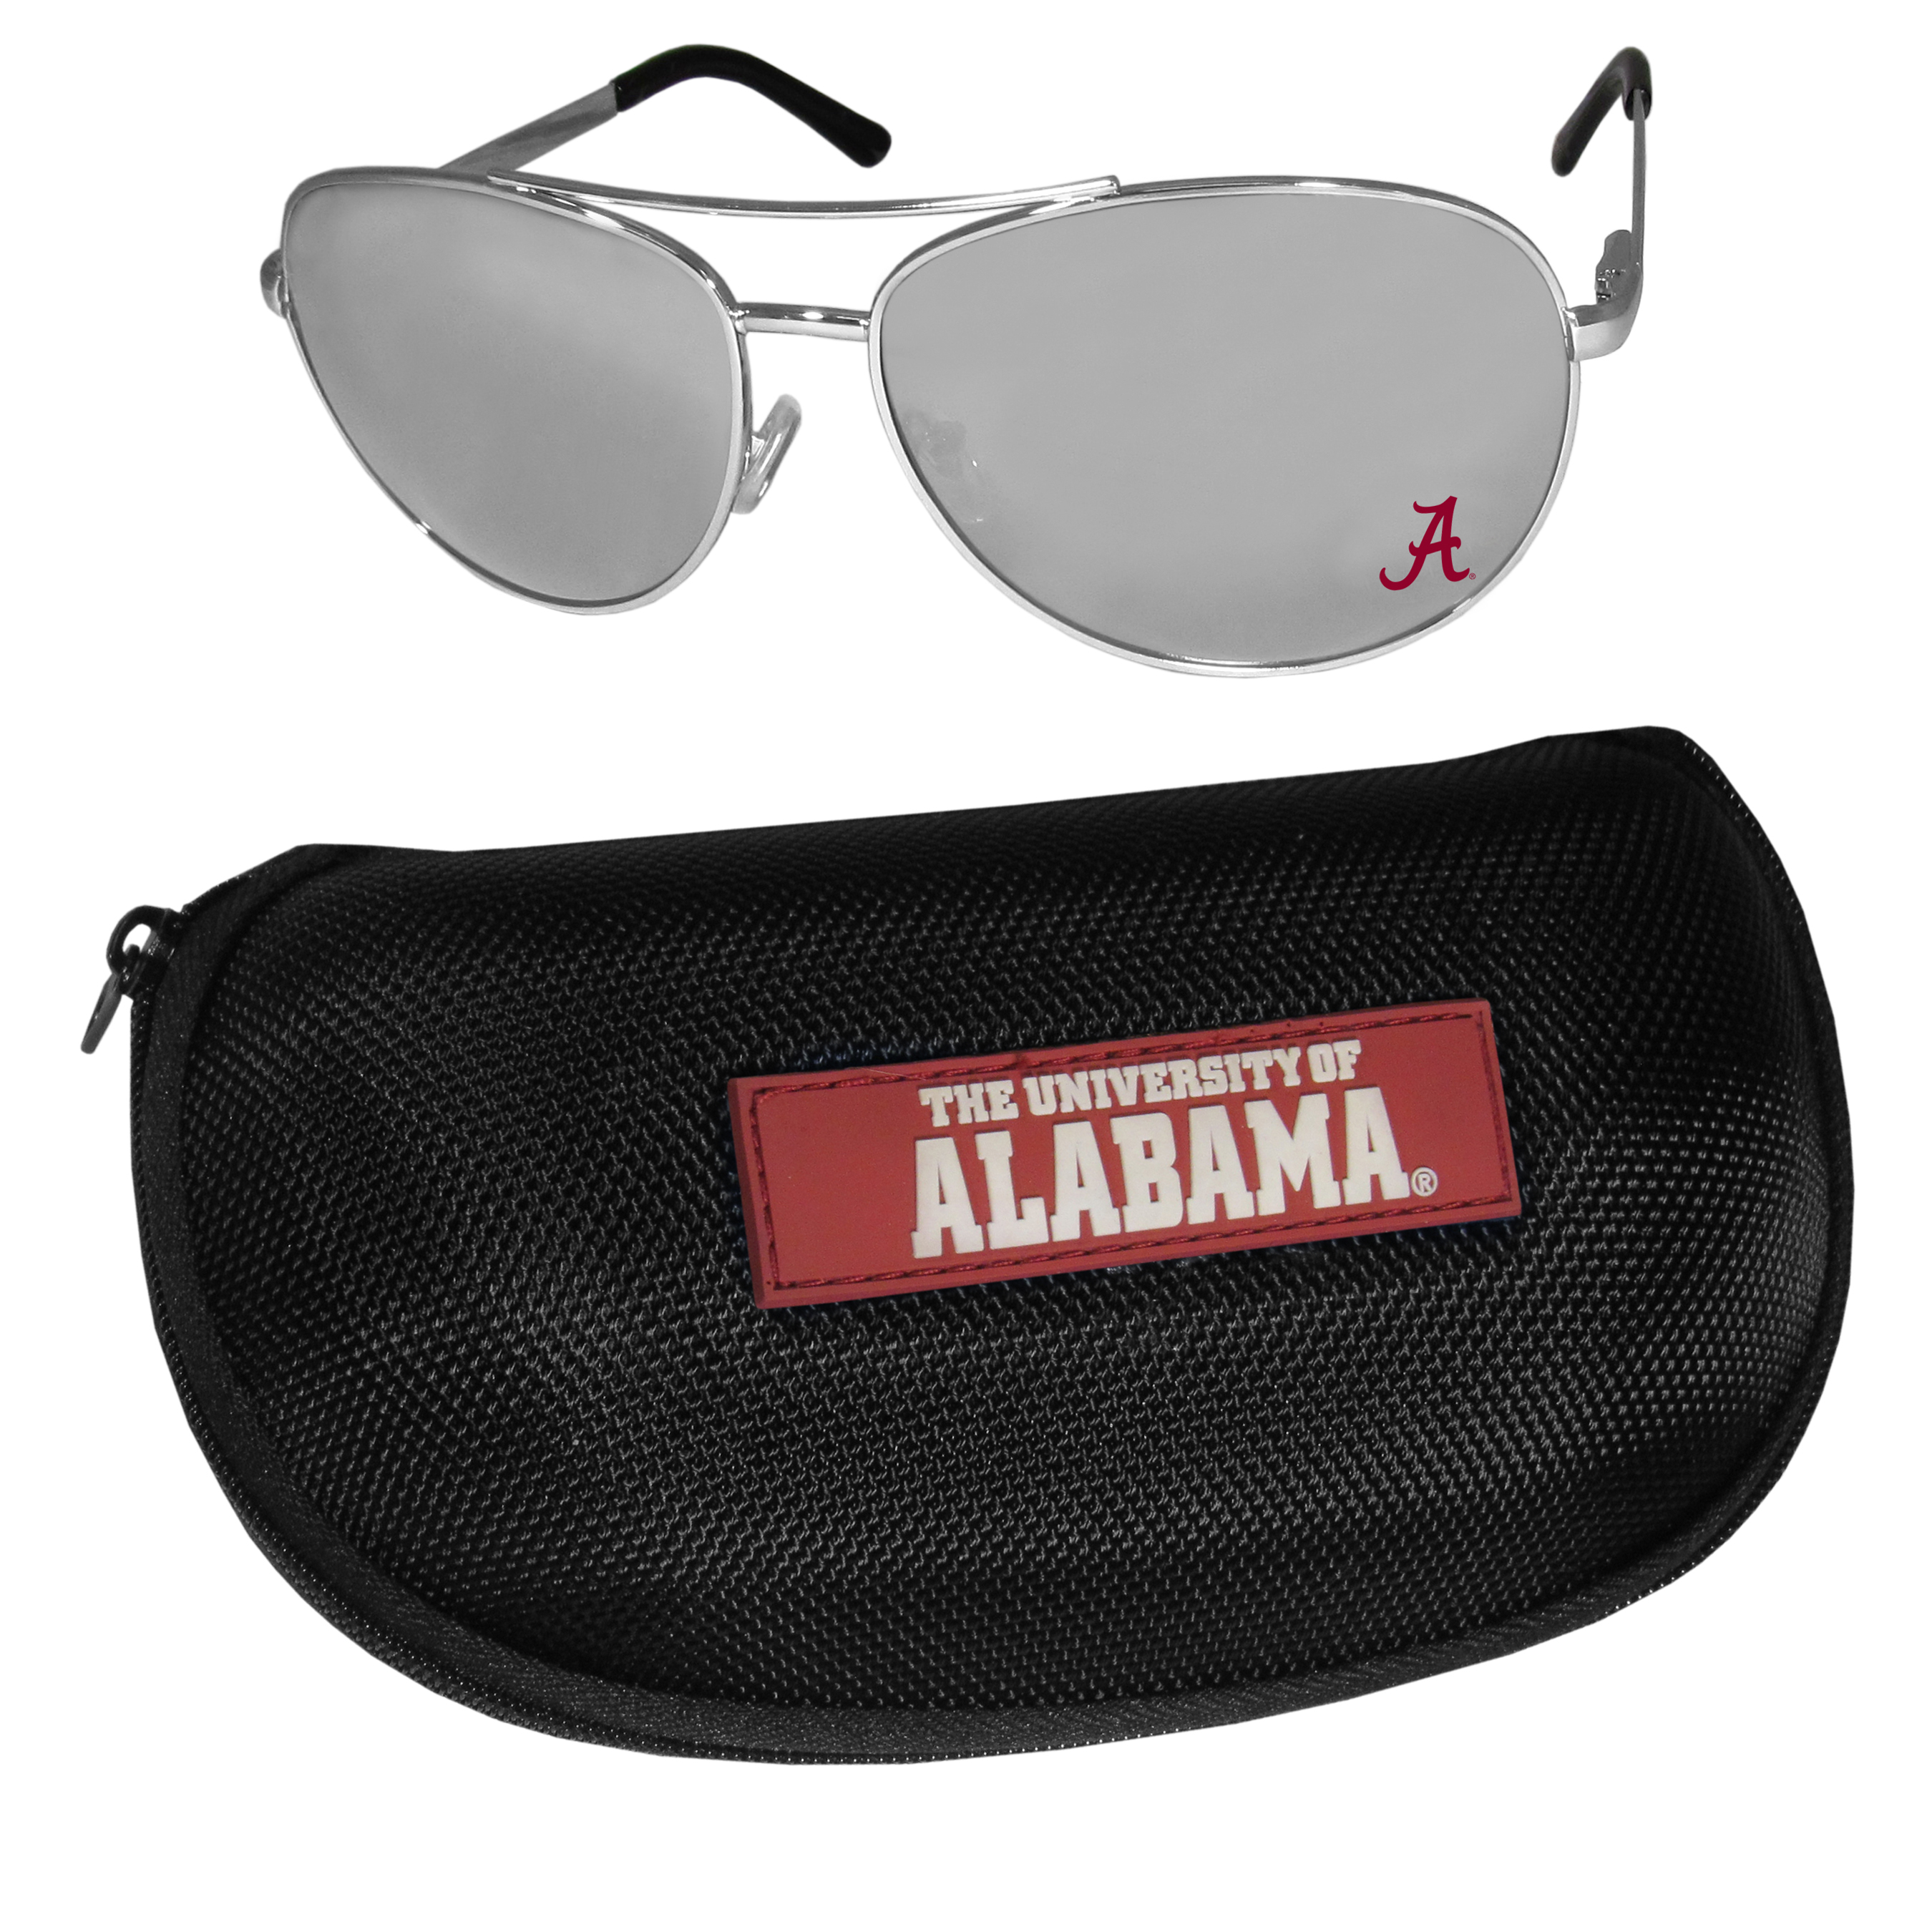 Alabama Crimson Tide Aviator Sunglasses and Zippered Carrying Case - Aviator sunglasses are truly an iconic retro fashion statement that never goes out-of-style. Our Alabama Crimson Tide  aviator sunglasses pair this classic look with your love of the game. The iridium coated lenses reduce glare while driving, boating, golfing and their 100% UVA/UVB rating provides you with the maximum UV protection for all your outdoor activities. A millennial favorite, these affordable designer frames are the perfect eyewear accessory for a sports fan that is looking for high-quality at an affordable price. The durable, flex hinged frames are tough enough for hiking and camping or if you prefer sun bathing by the pool or on the beach these shades will really stand the test of time. The sunglasses come with a hard shell zippered case which has a large team logo on the lid that will make even the most die-hard fan proud!